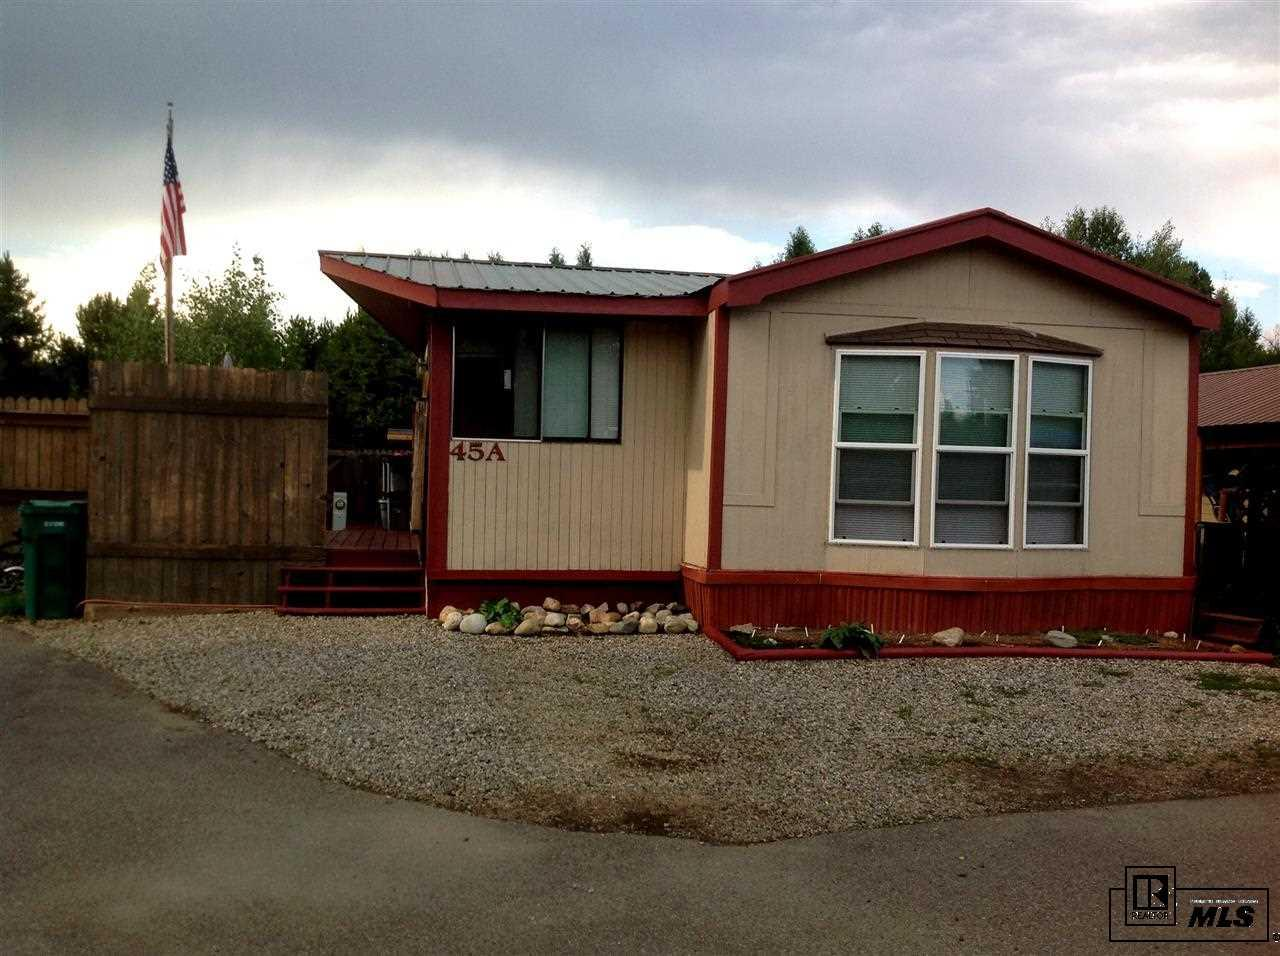 75 Anglers Dr #45A, Steamboat Springs, CO 80487 | Trulia